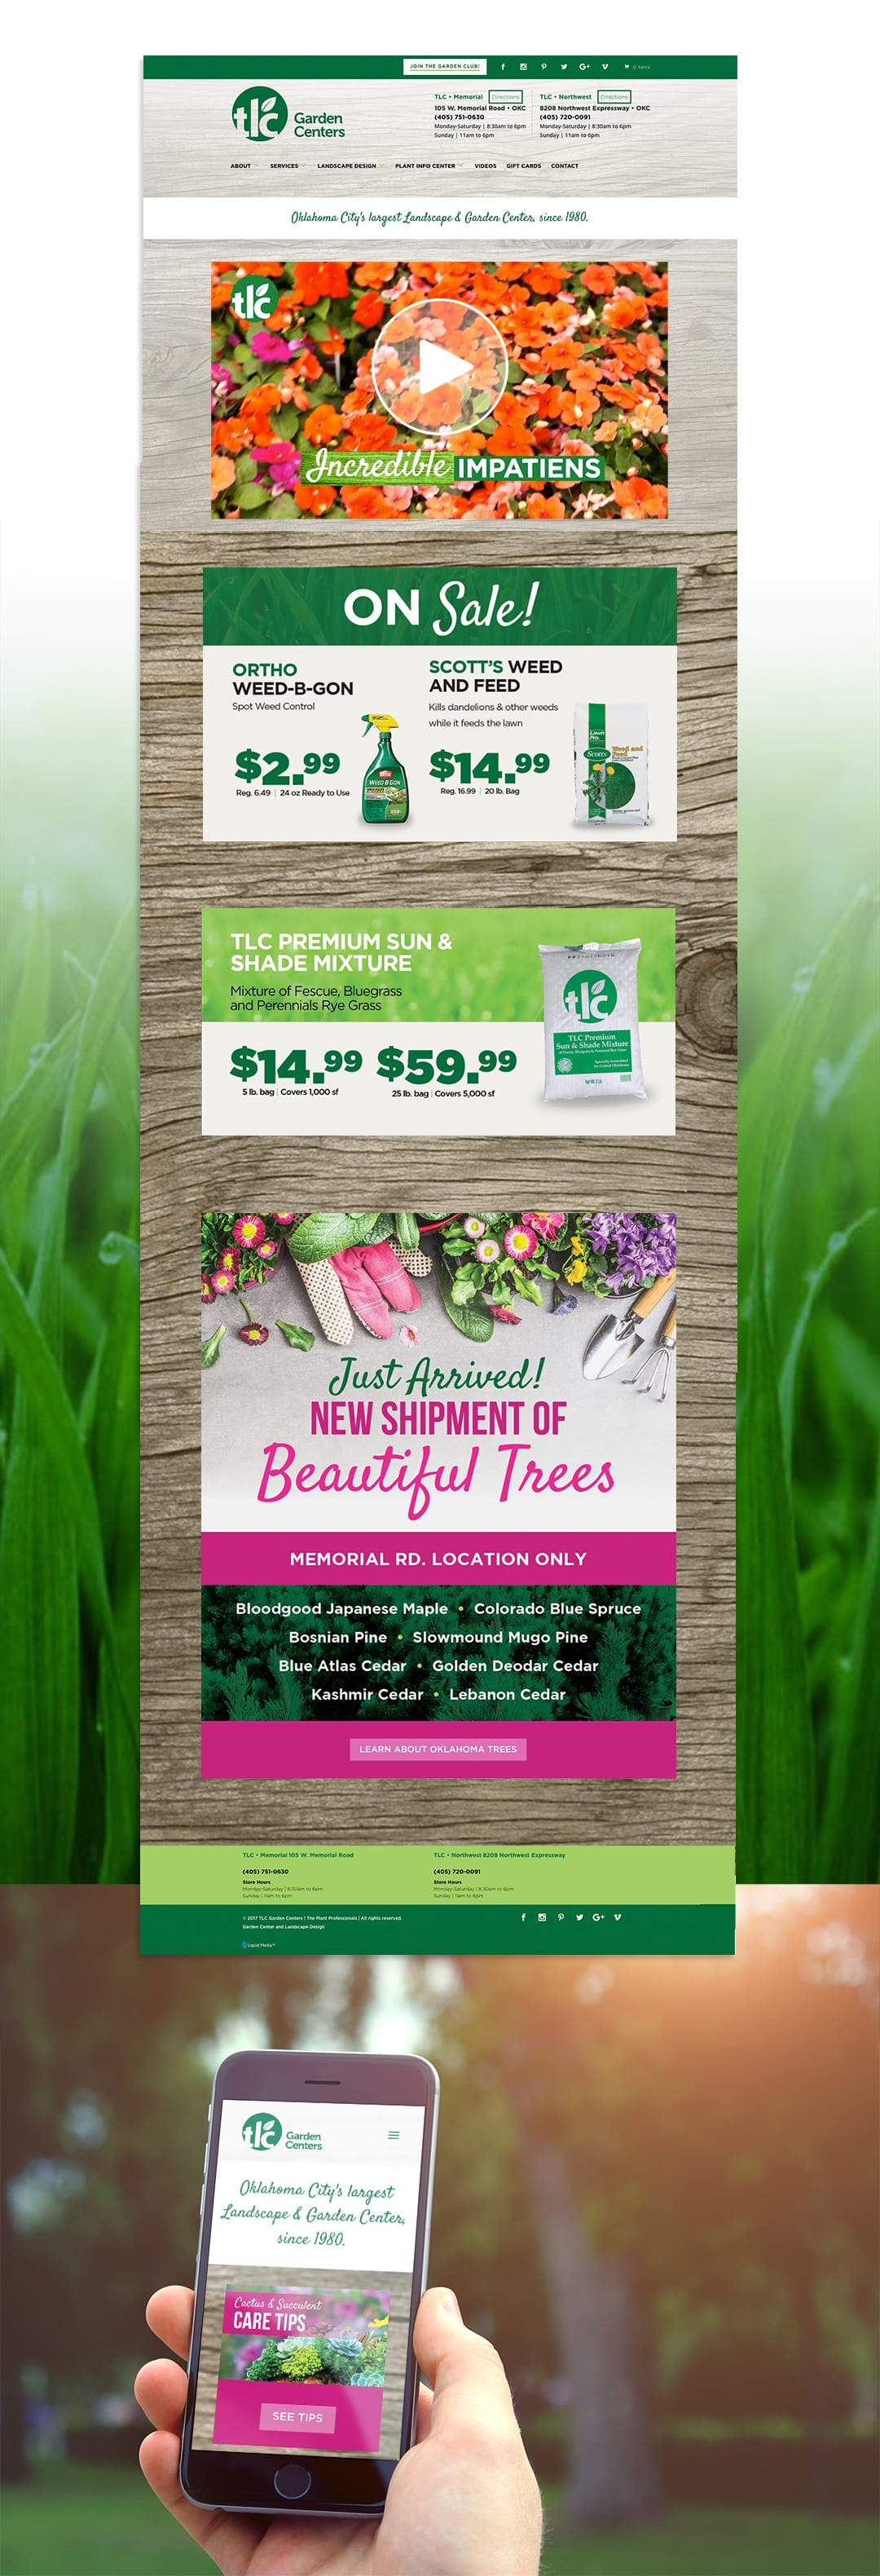 TLC Garden Centers Website Design by Liquid Media